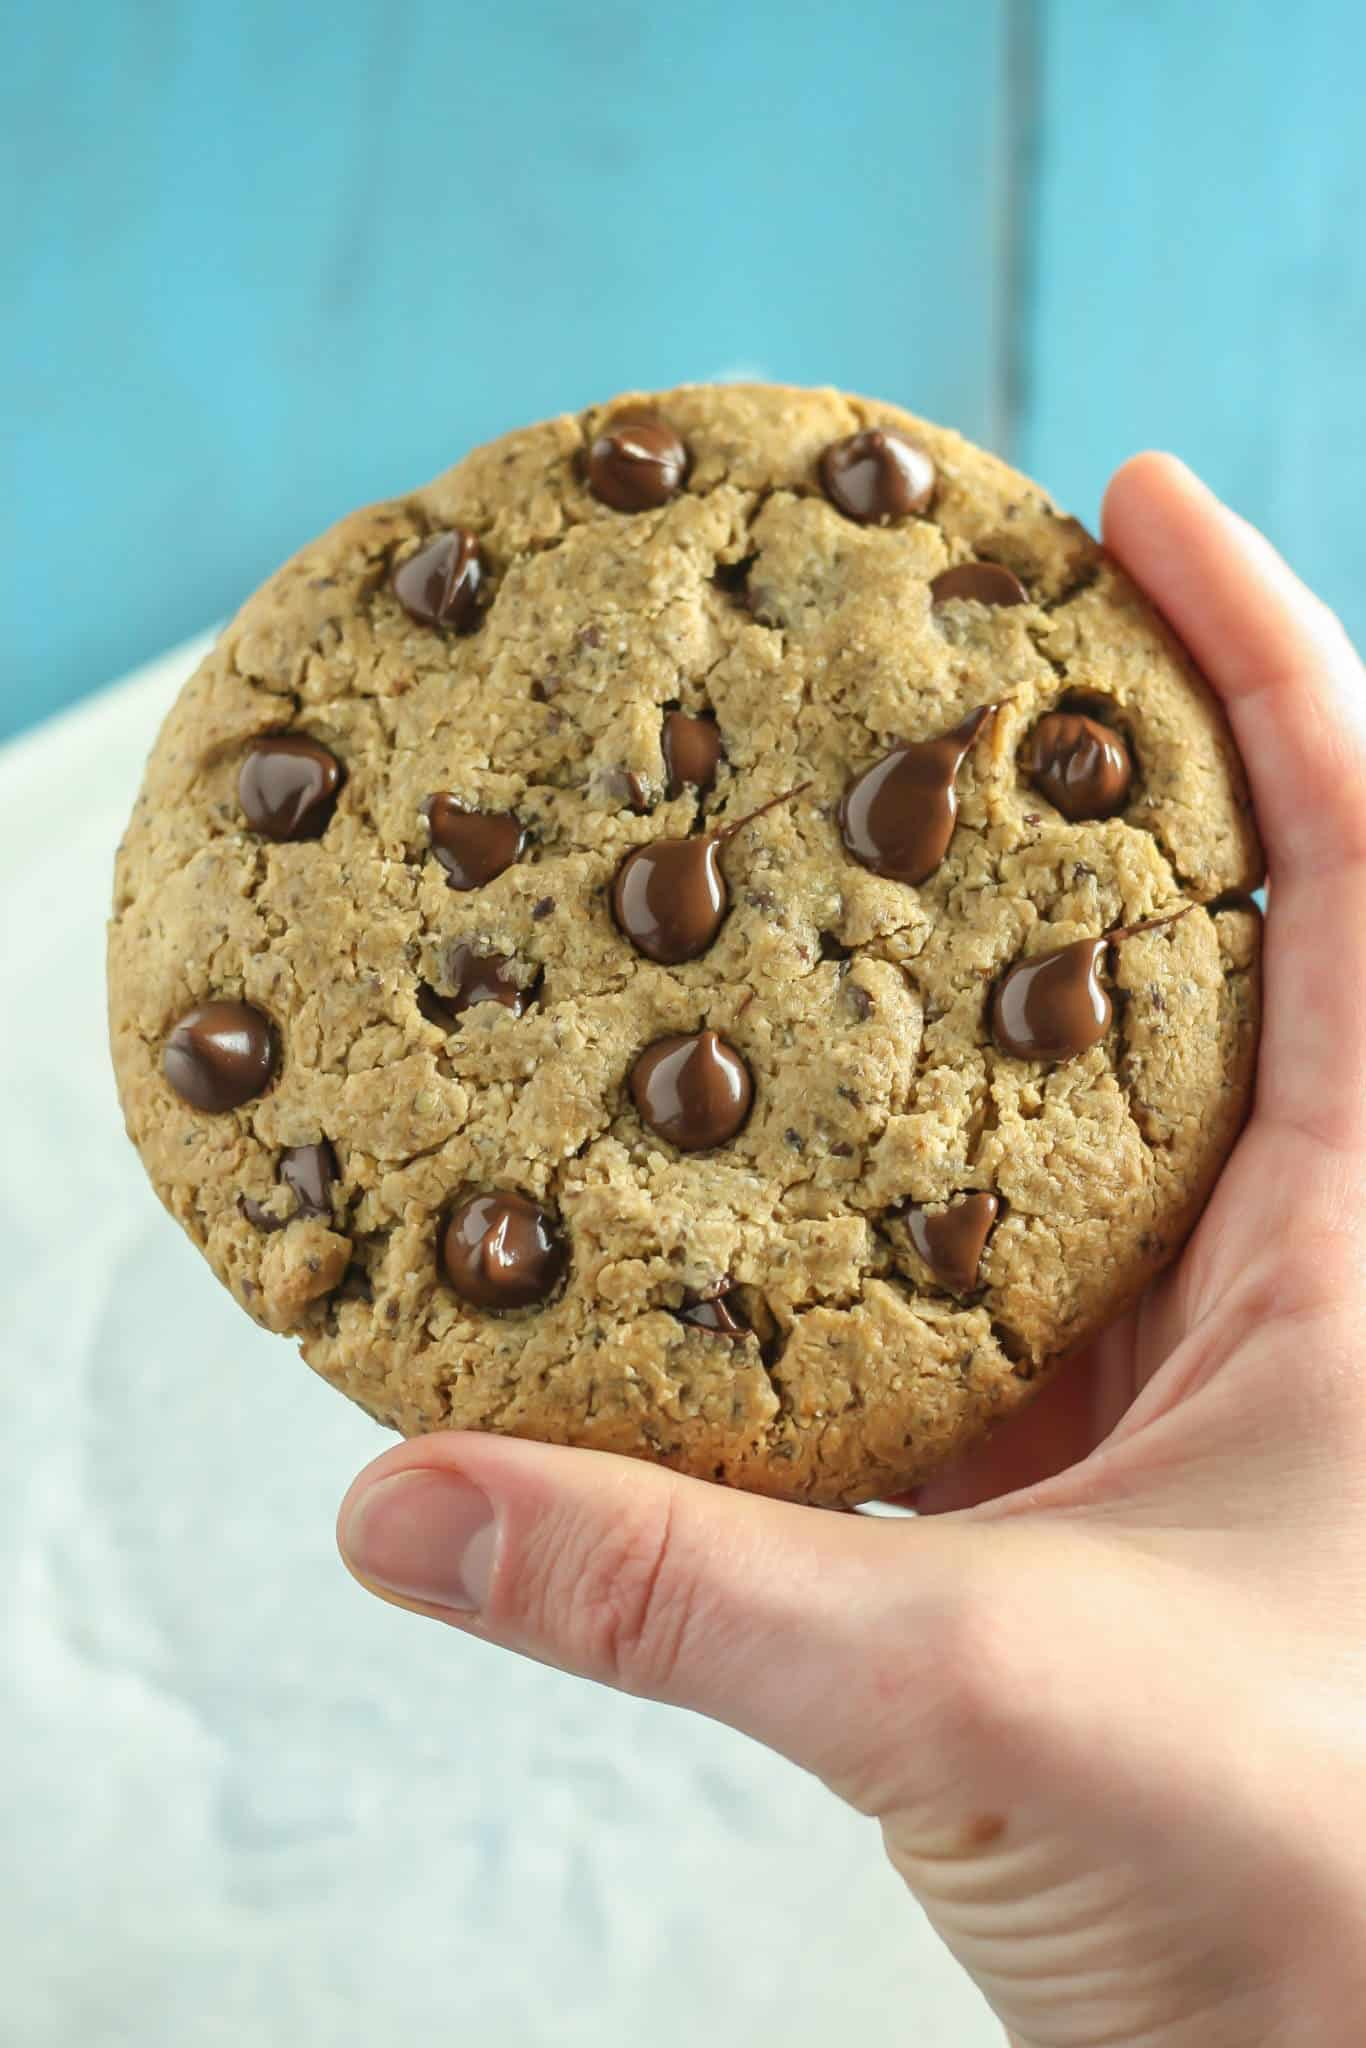 Giant Vegan Chocolate Chip Cookie Gluten Free Fit